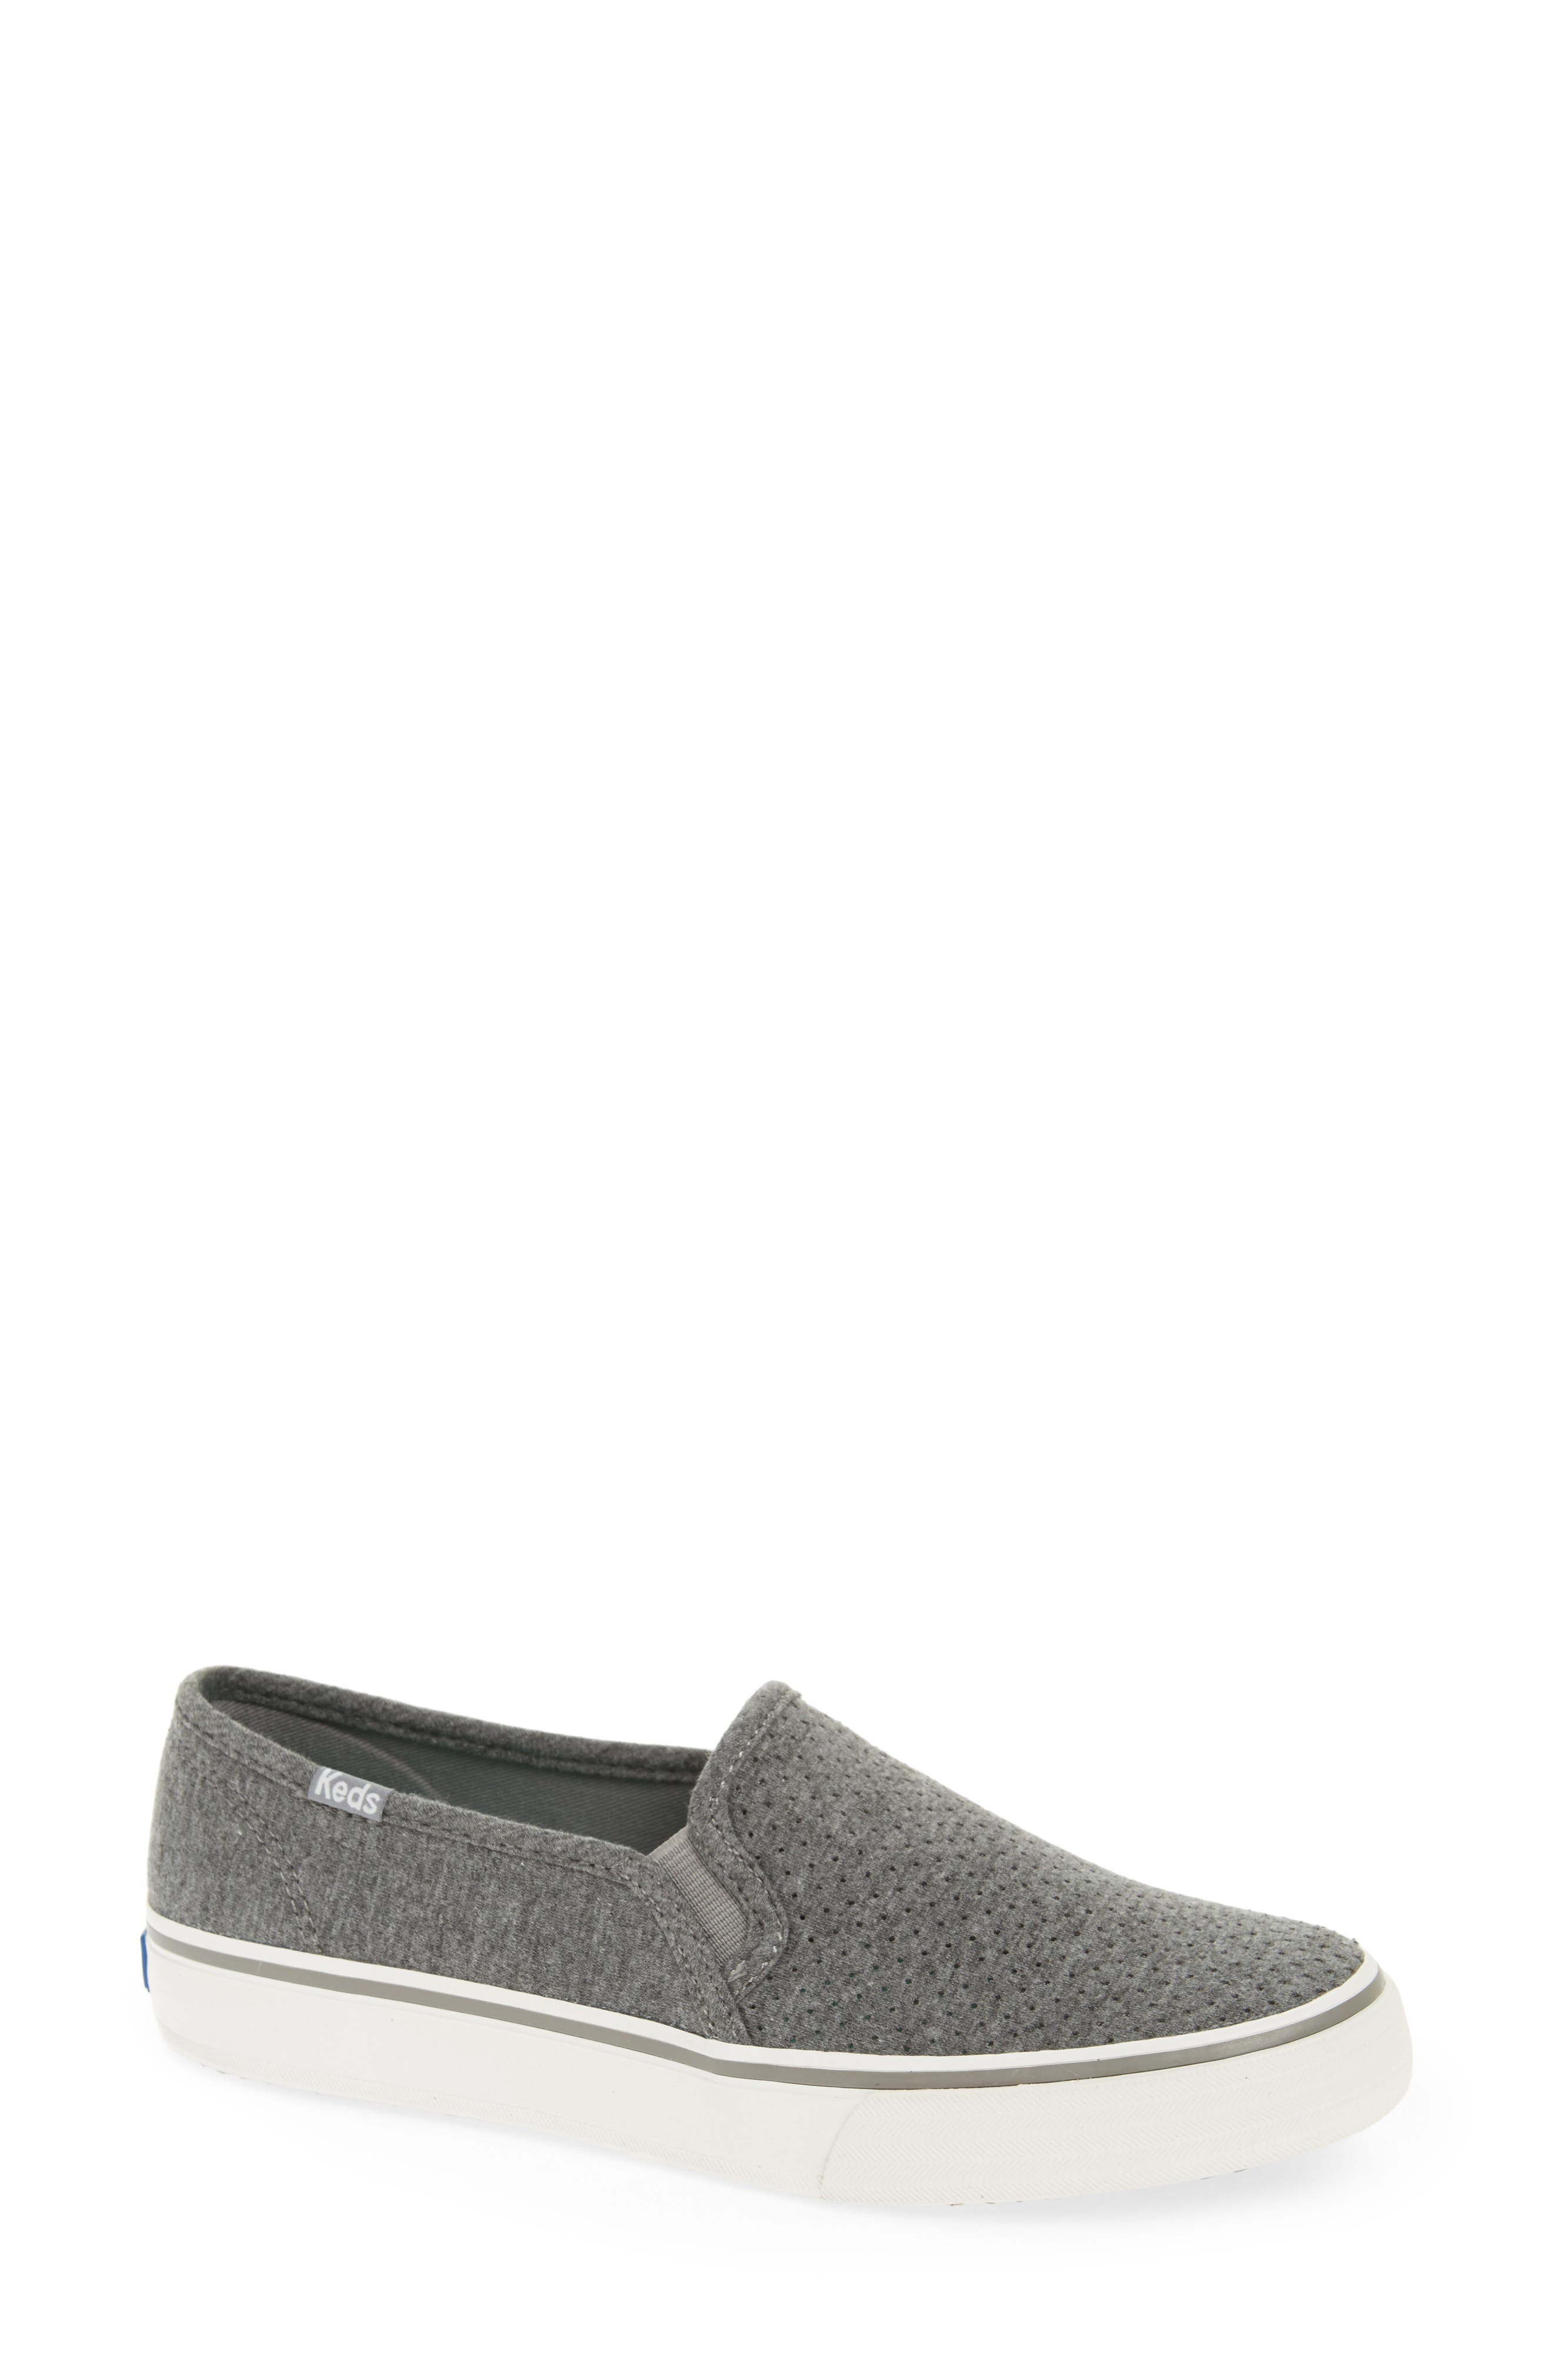 Double Decker Perforated Slip-On Sneaker,                             Main thumbnail 1, color,                             021